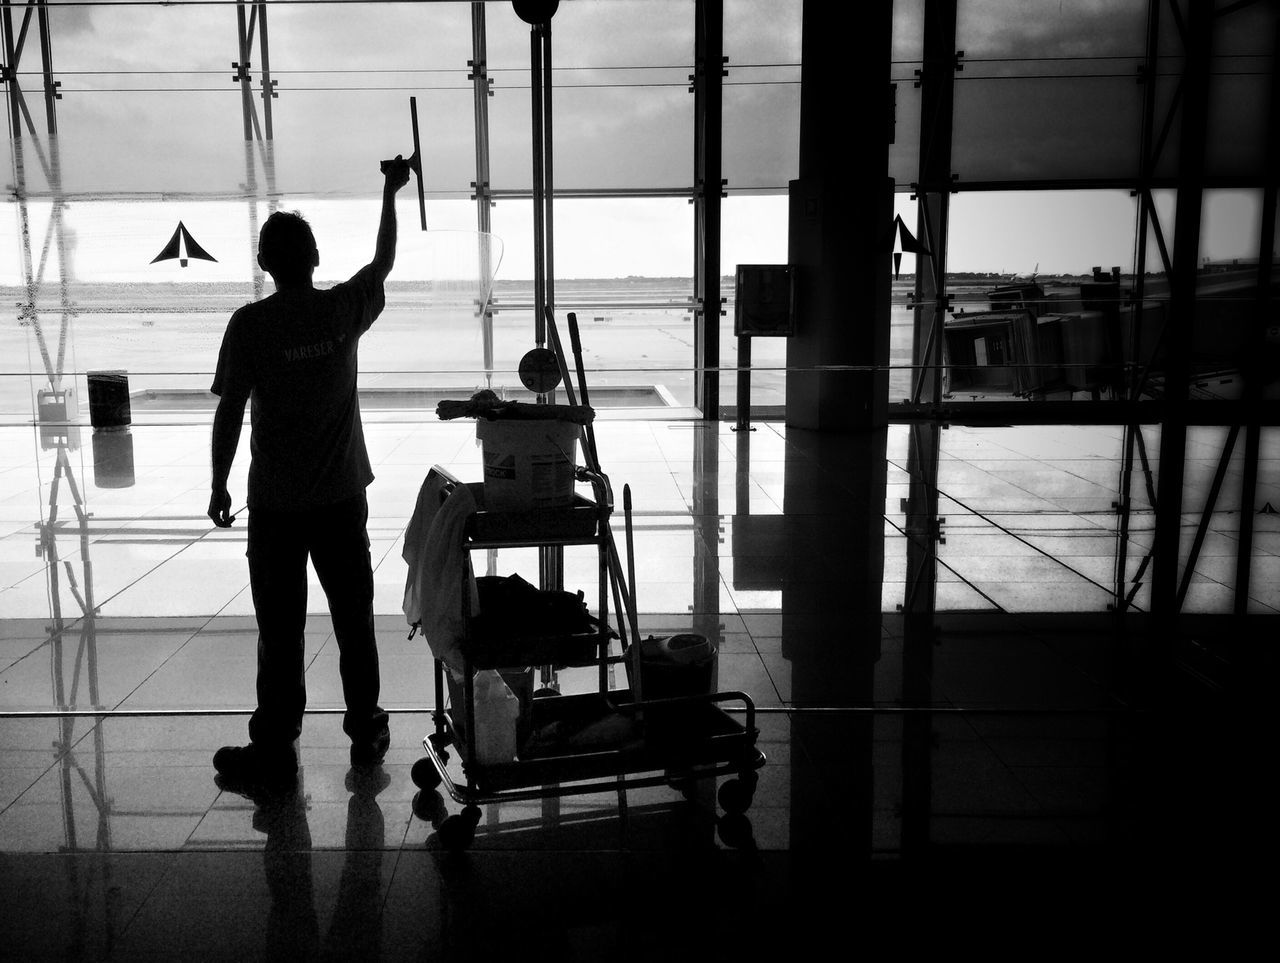 full length, luggage, real people, transportation, silhouette, travel, men, airport, airport departure area, indoors, lifestyles, standing, journey, day, air vehicle, airplane, women, nautical vessel, sky, adult, people